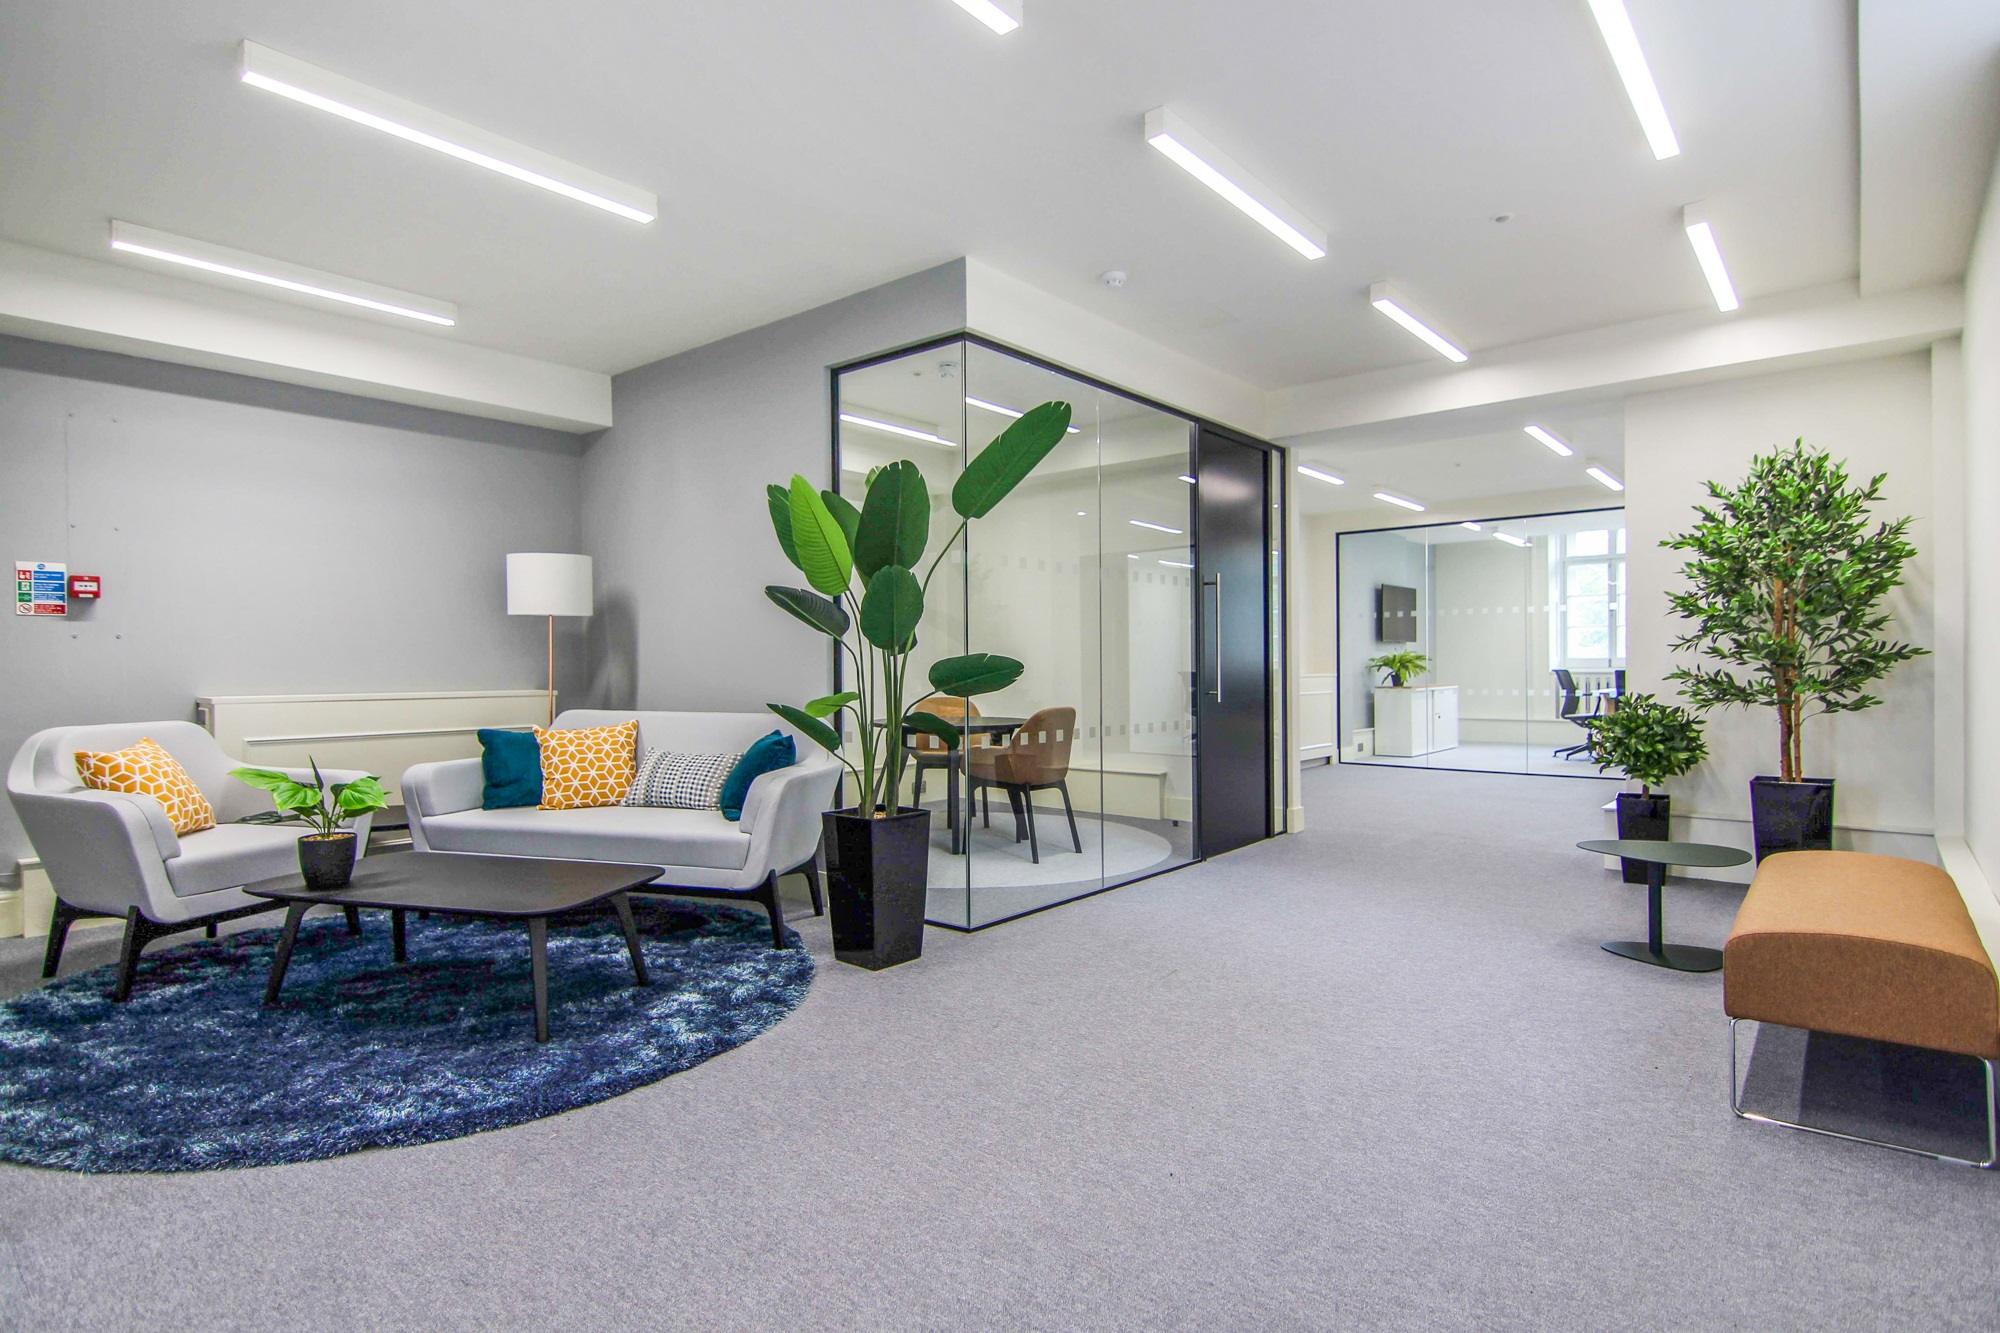 office with plants and cubicle meeting rooms